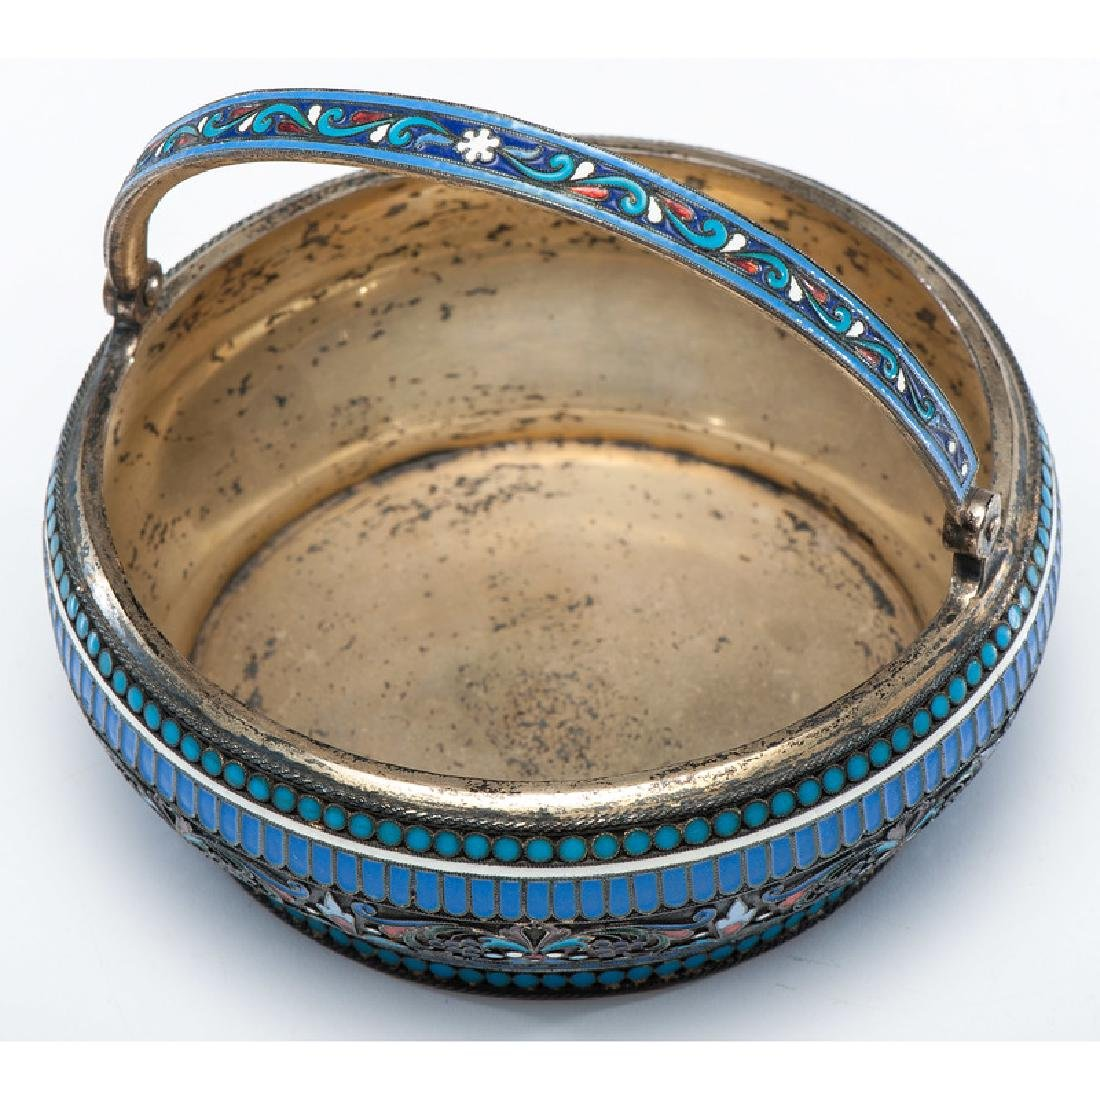 Russian Silver-Gilt and Enamel Basket - 2